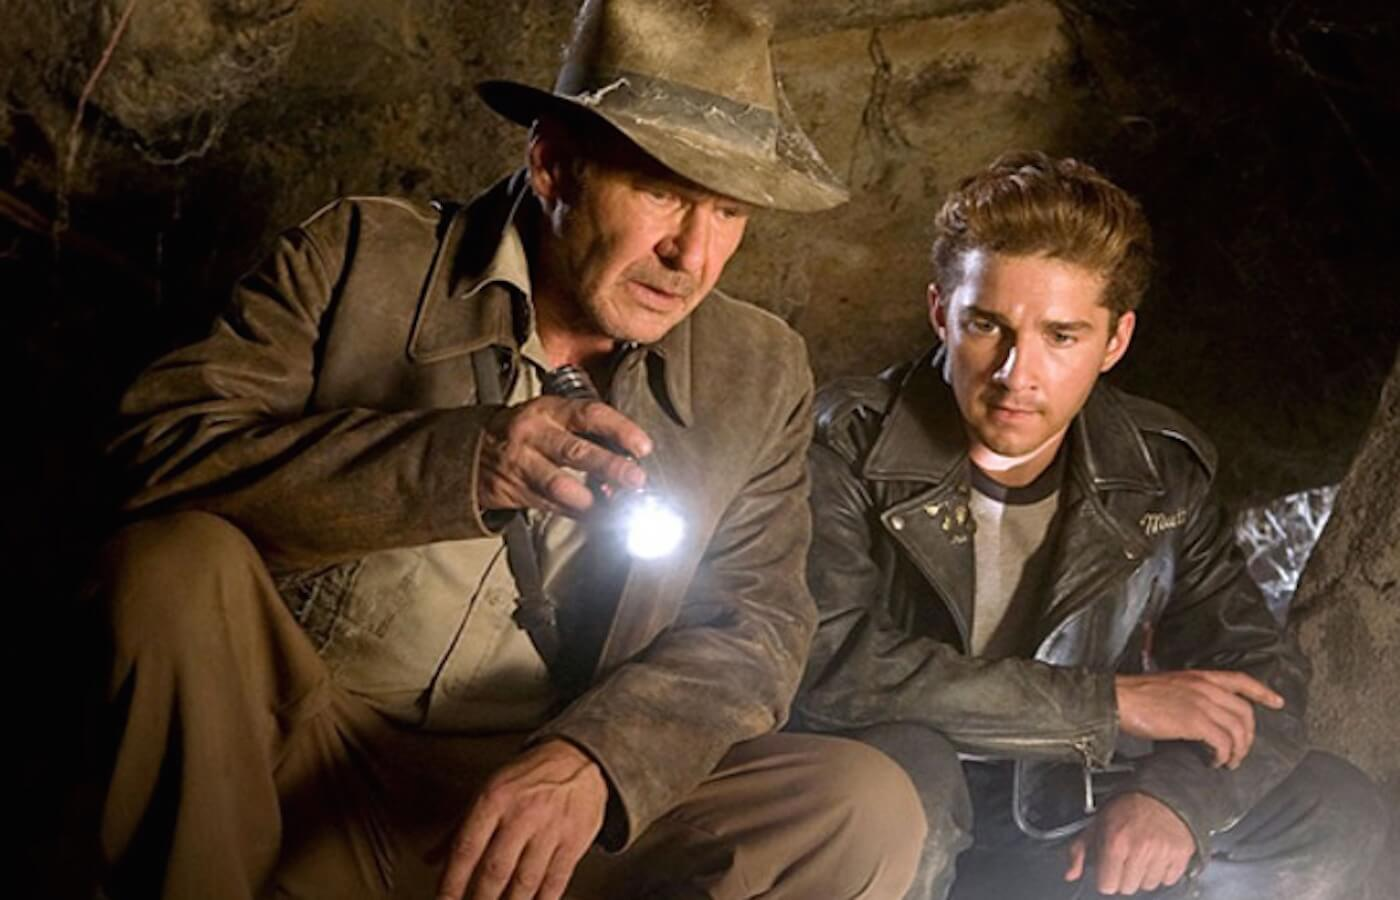 Indiana jones harrison ford shia labeouf